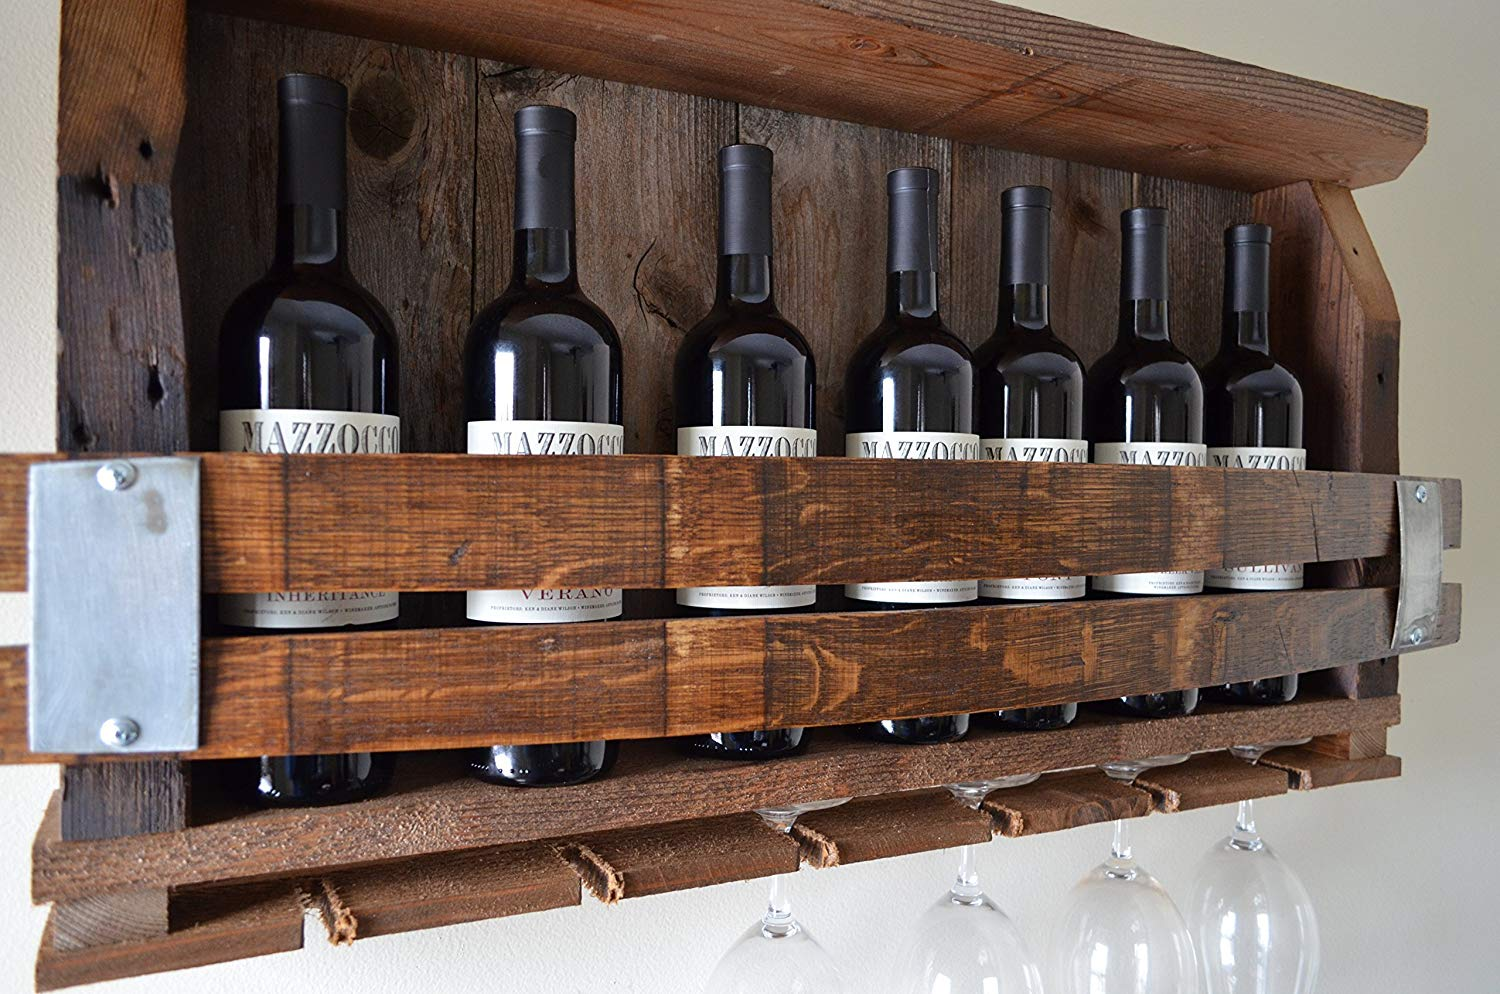 Barn Wood Wine Rack - with Wine barrel staves